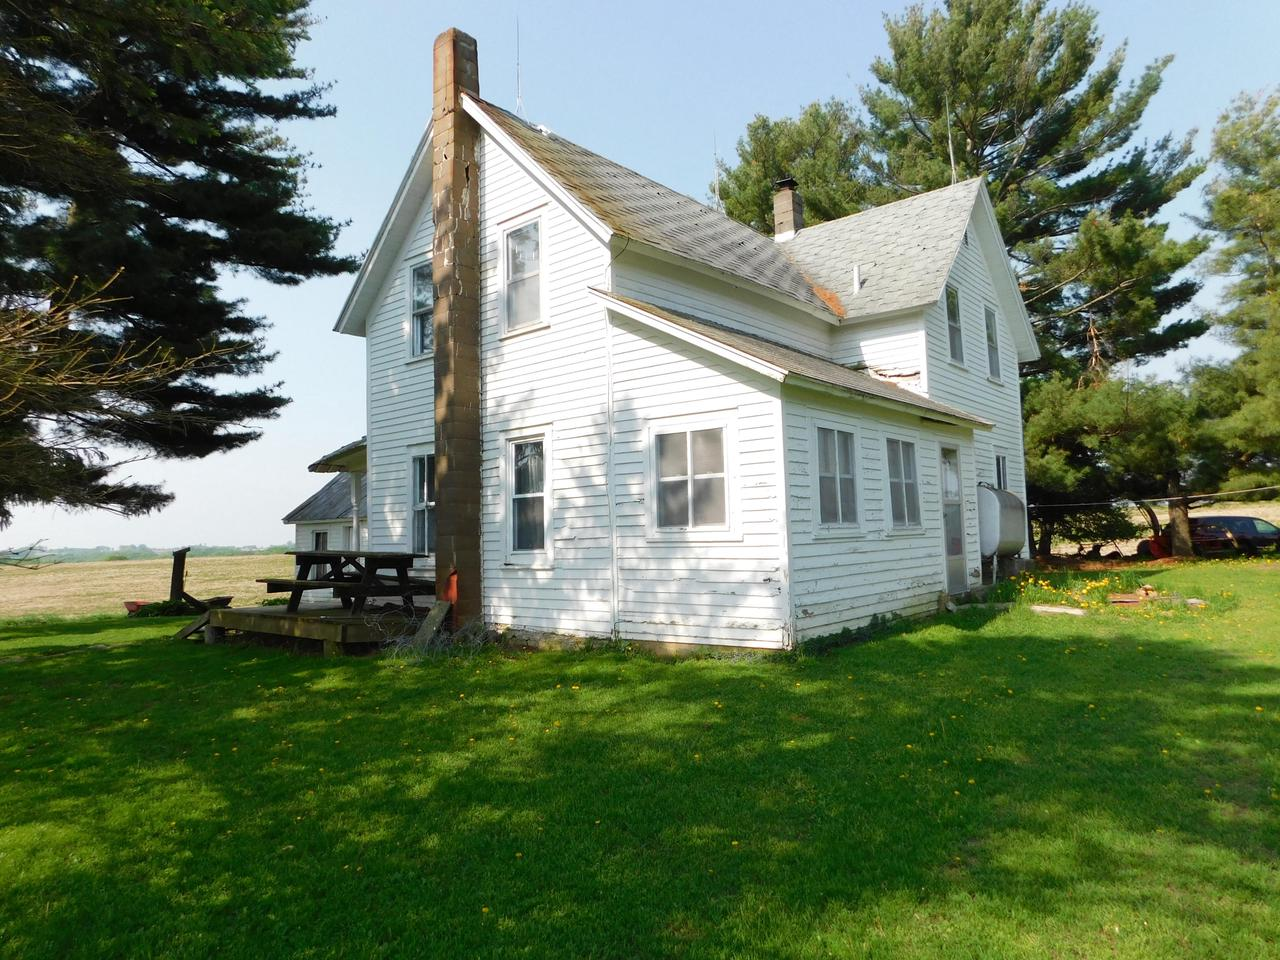 Beautiful country setting waiting for you! This 4 bedroom 1 bath farmhouse  is being offered with 40+/- acres on a Sealed Bid. Outbuildings include a barn, shed, and summer kitchen.  Sealed bid packets available thru listing agent and on sign at property